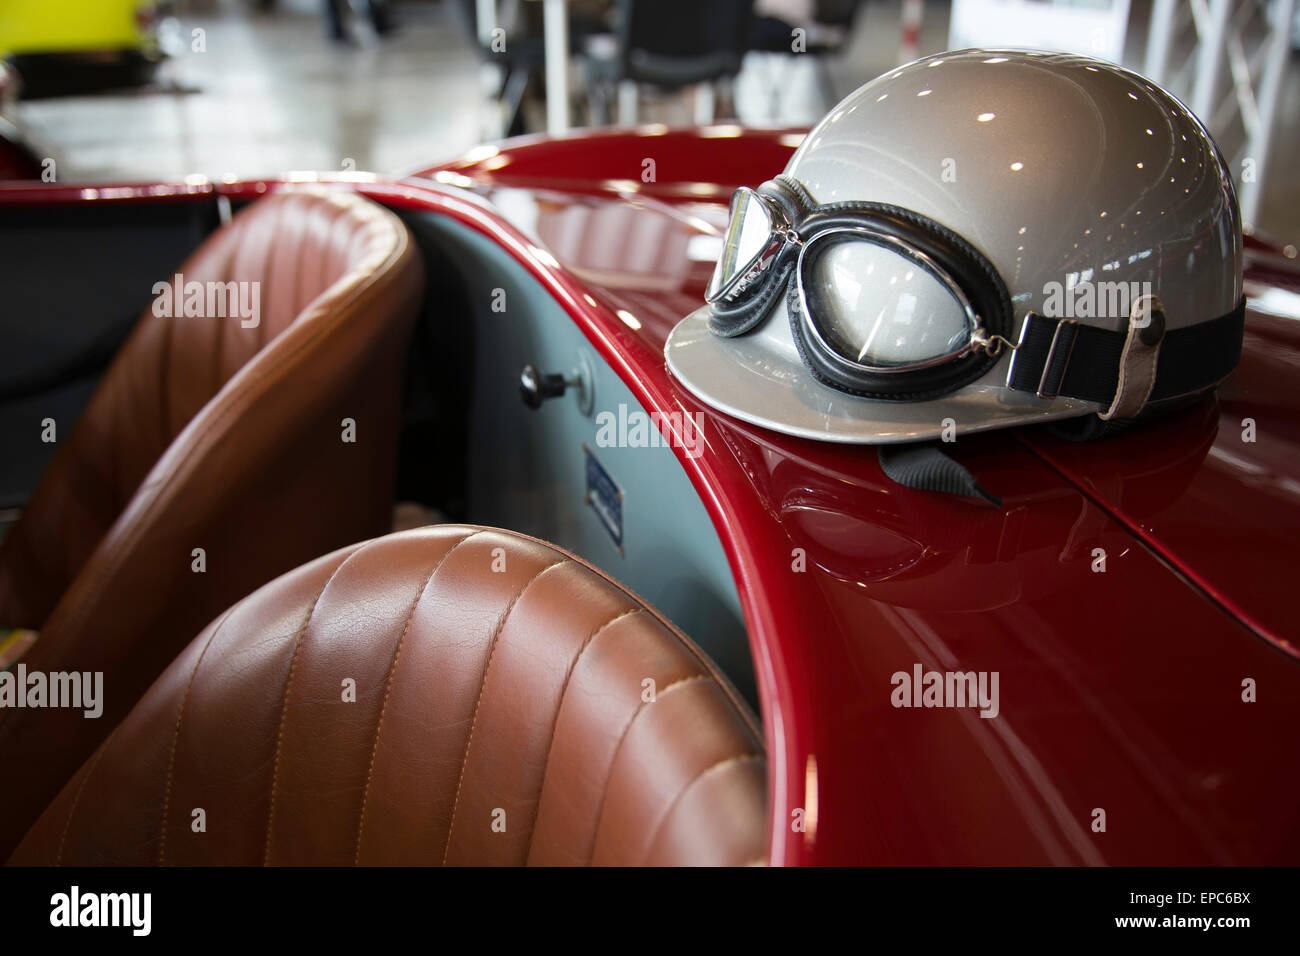 helmet and glasses resting on a luxury convertible sports car - Stock Image